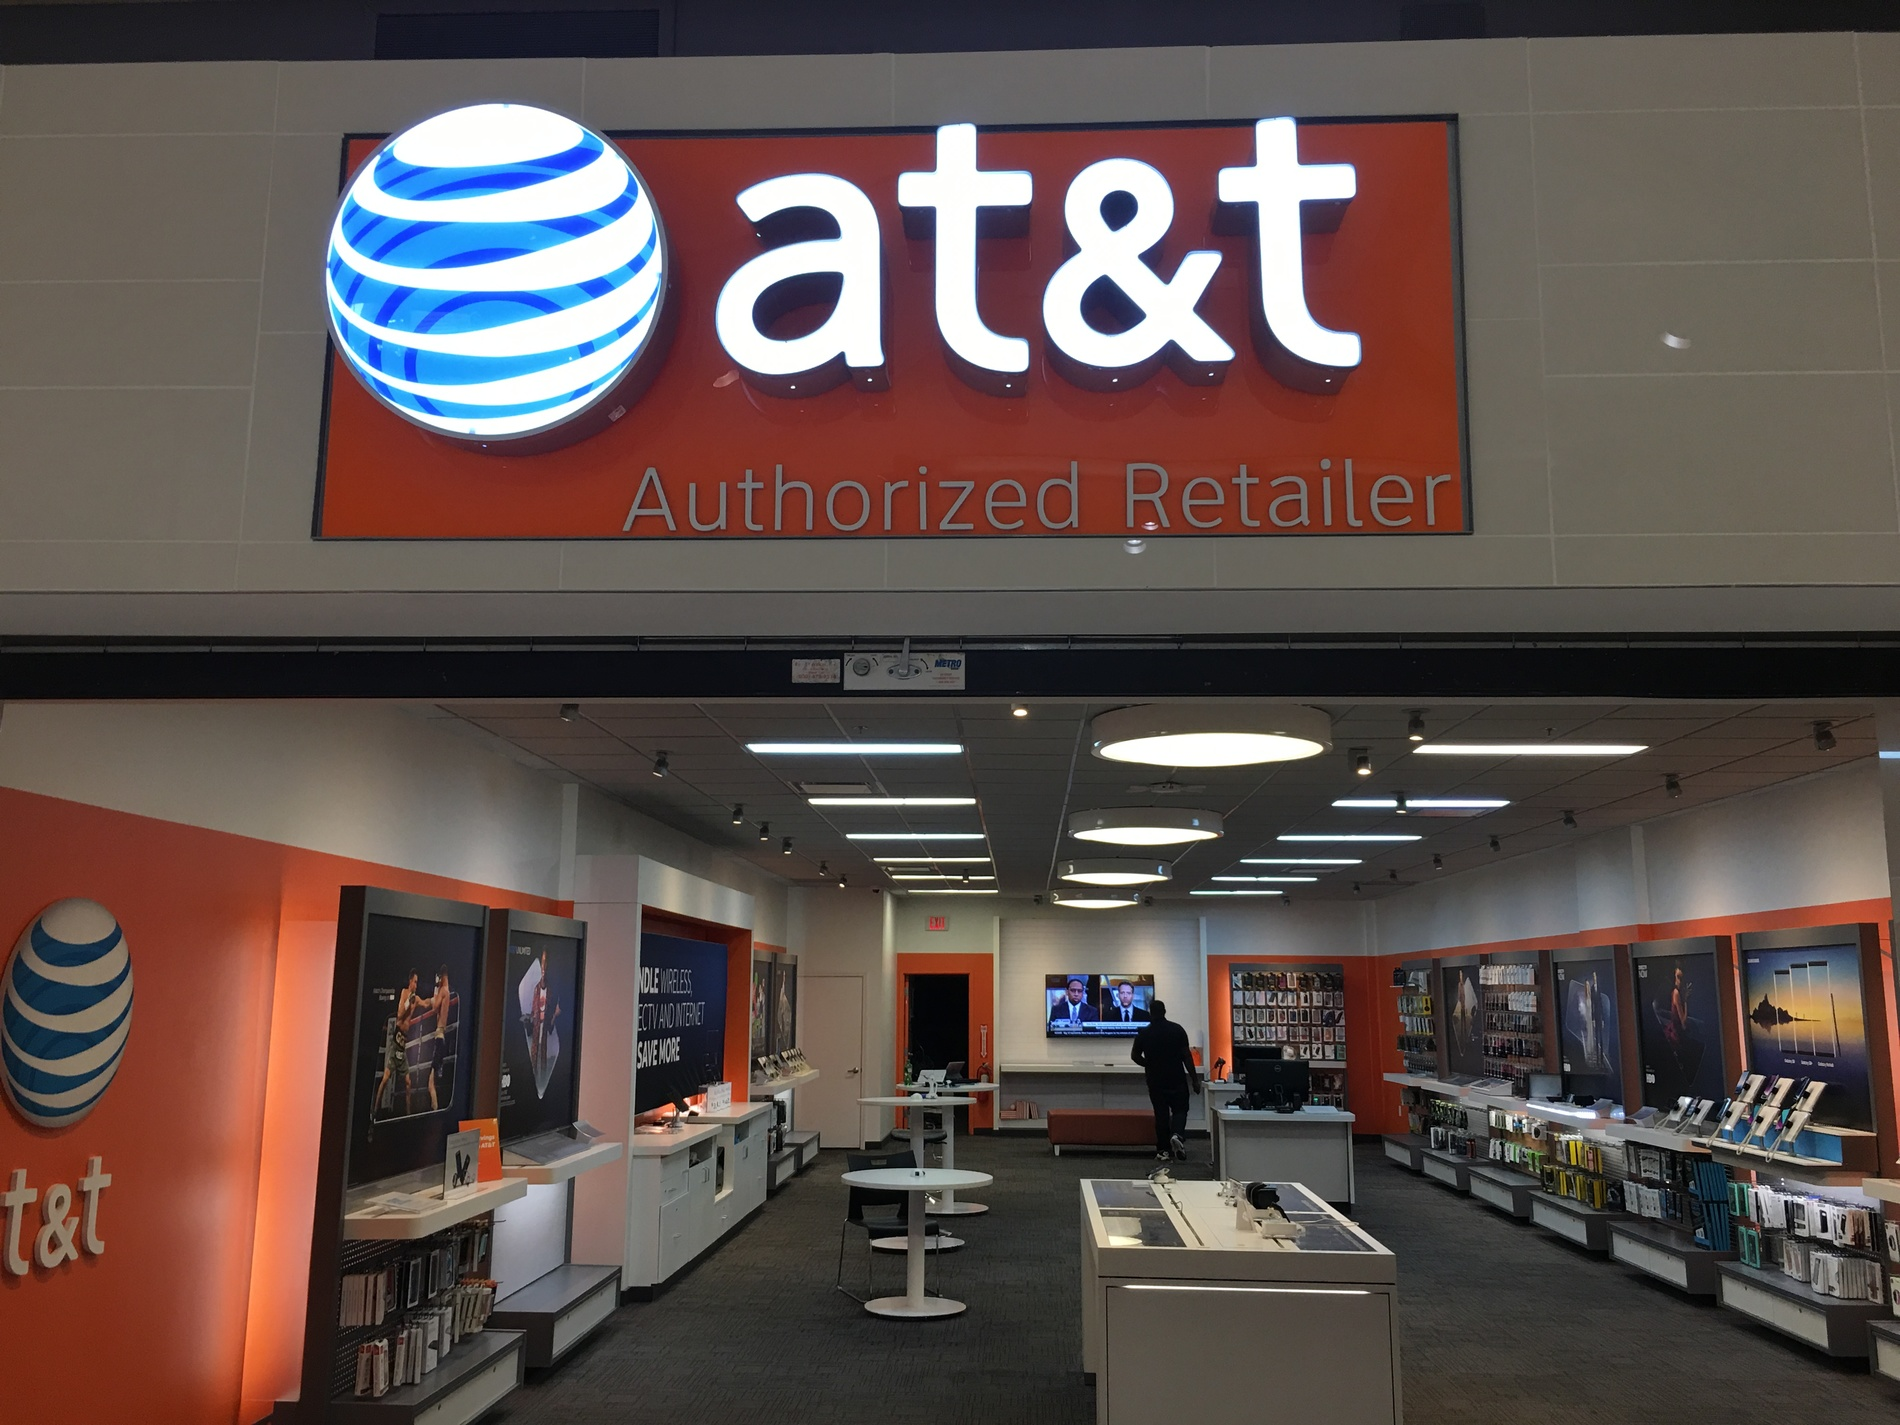 nearest at&t store to my location